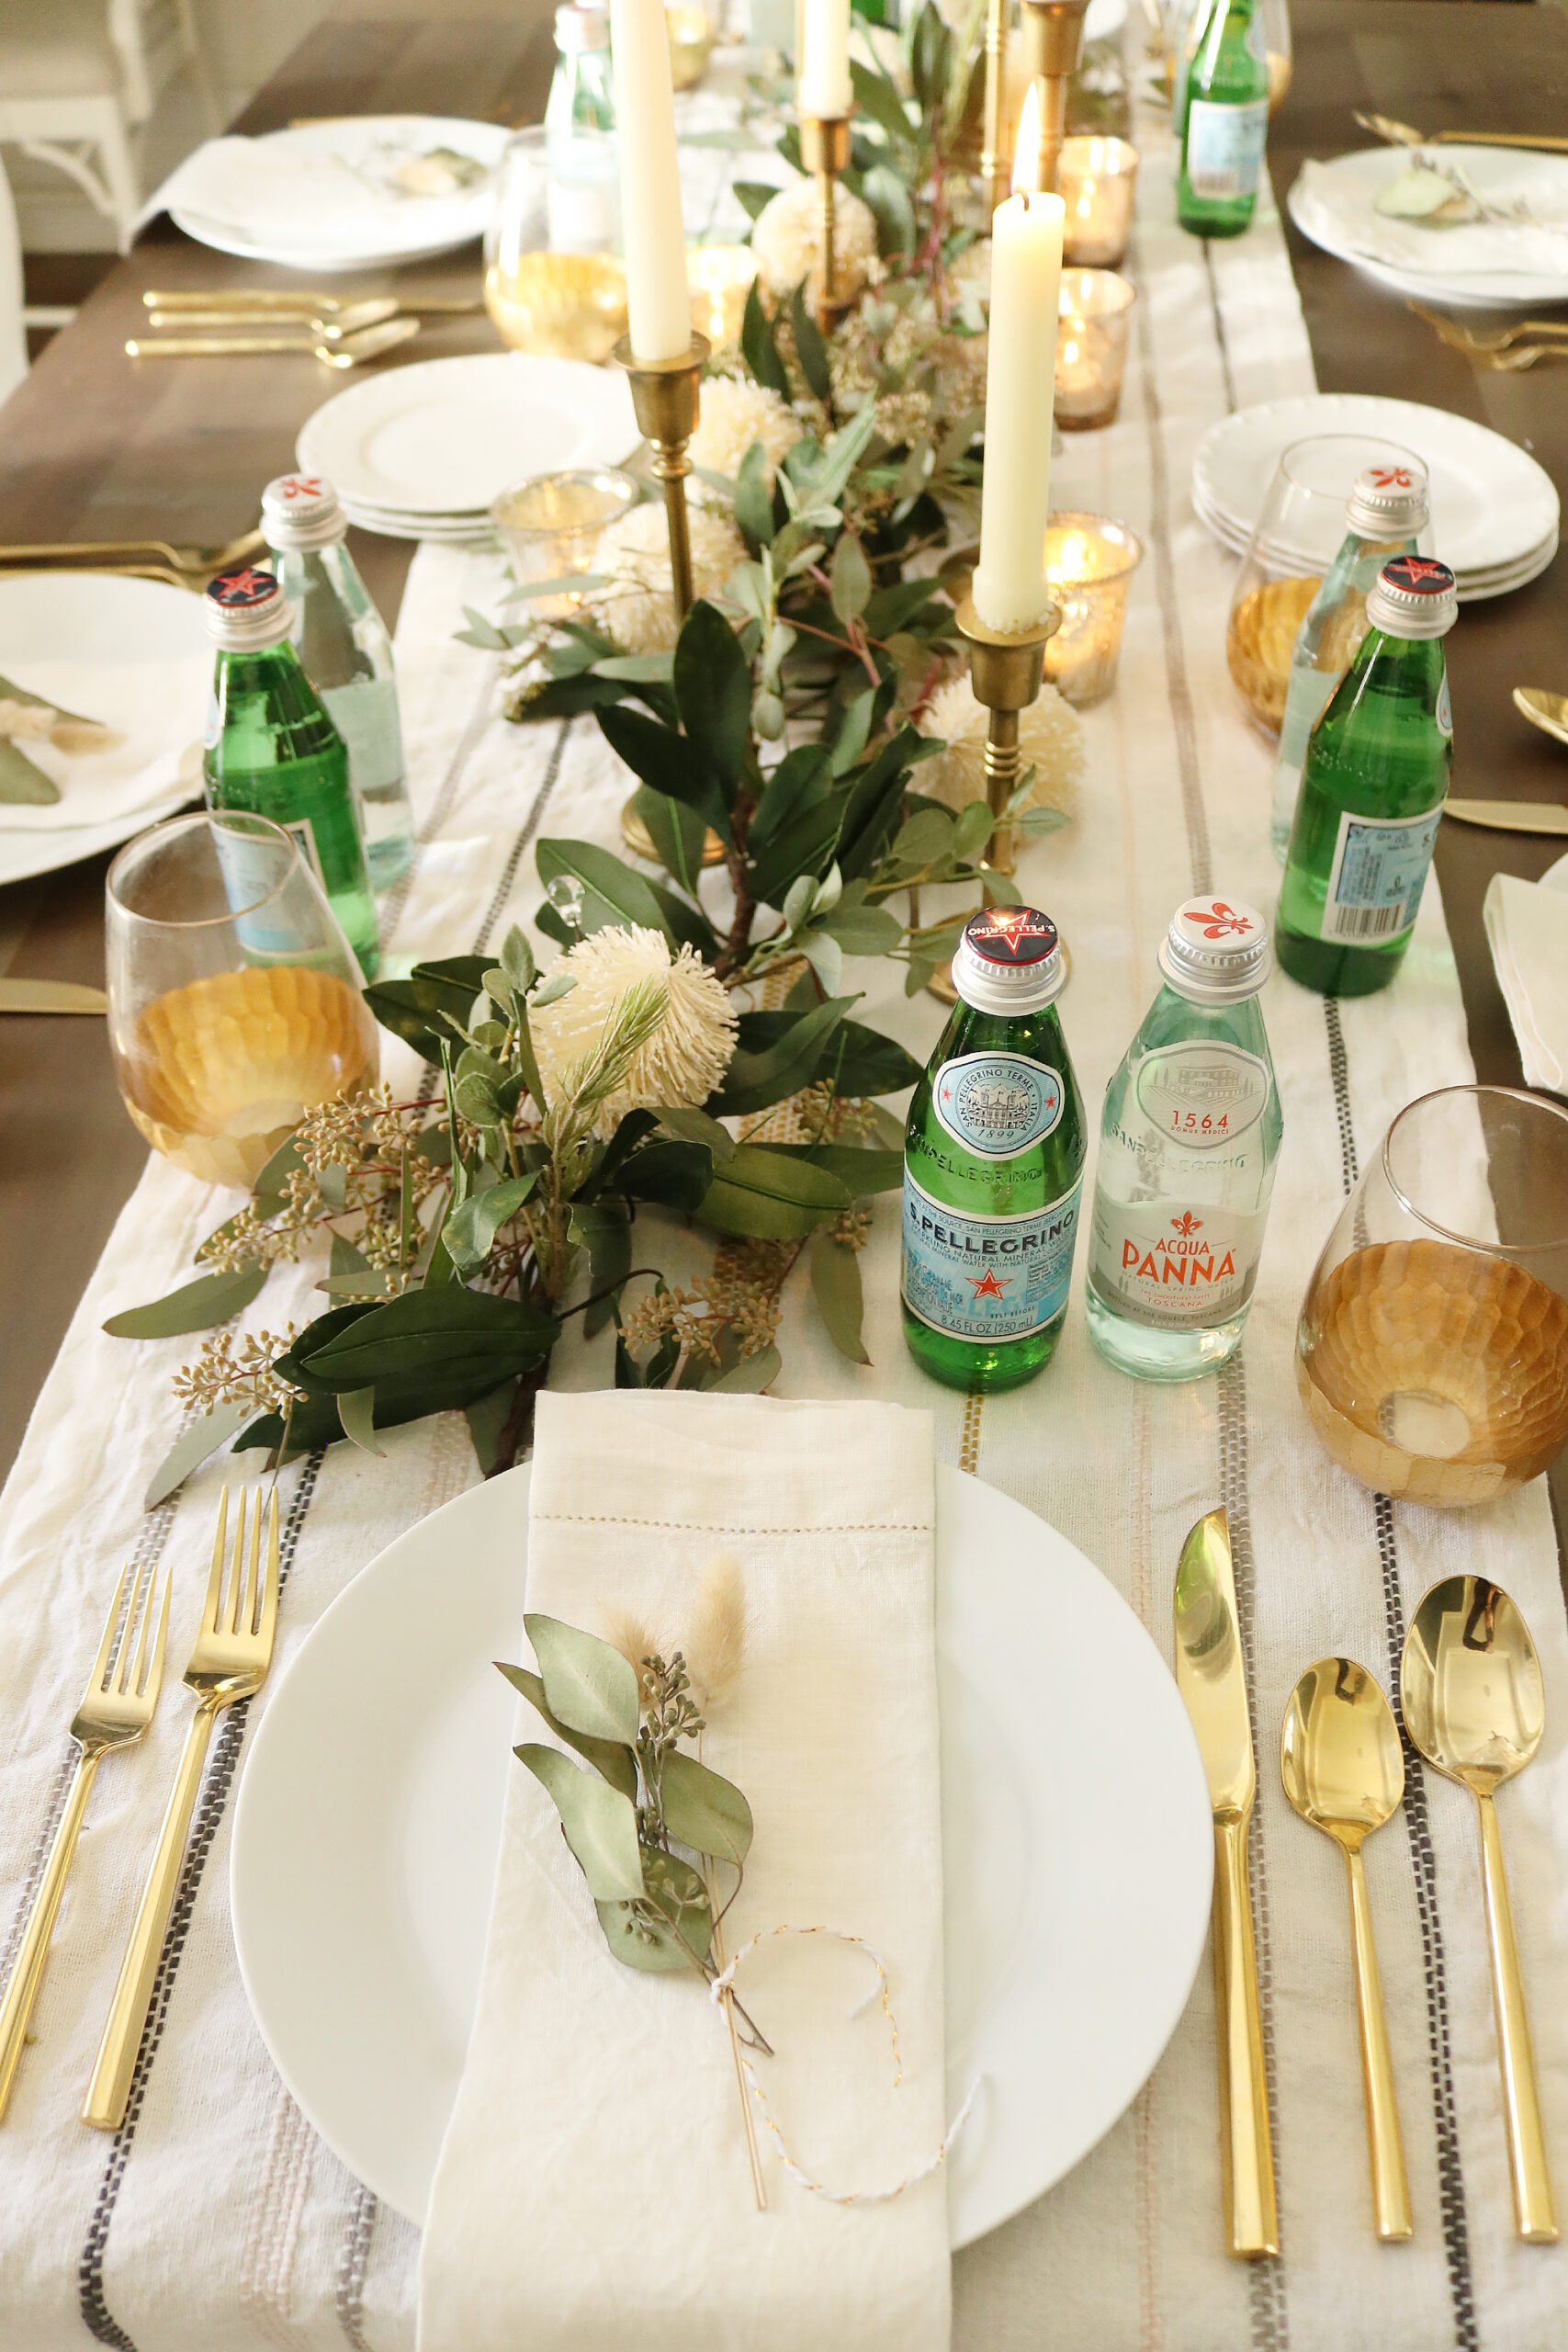 5 Ways to bring the restaurant experience to your home with Acqua Panna and Pellegrino single-serve glass bottles perfect to add the table. cheese board charcuterie board.  || Darling Darleen Top Lifestyle Blogger